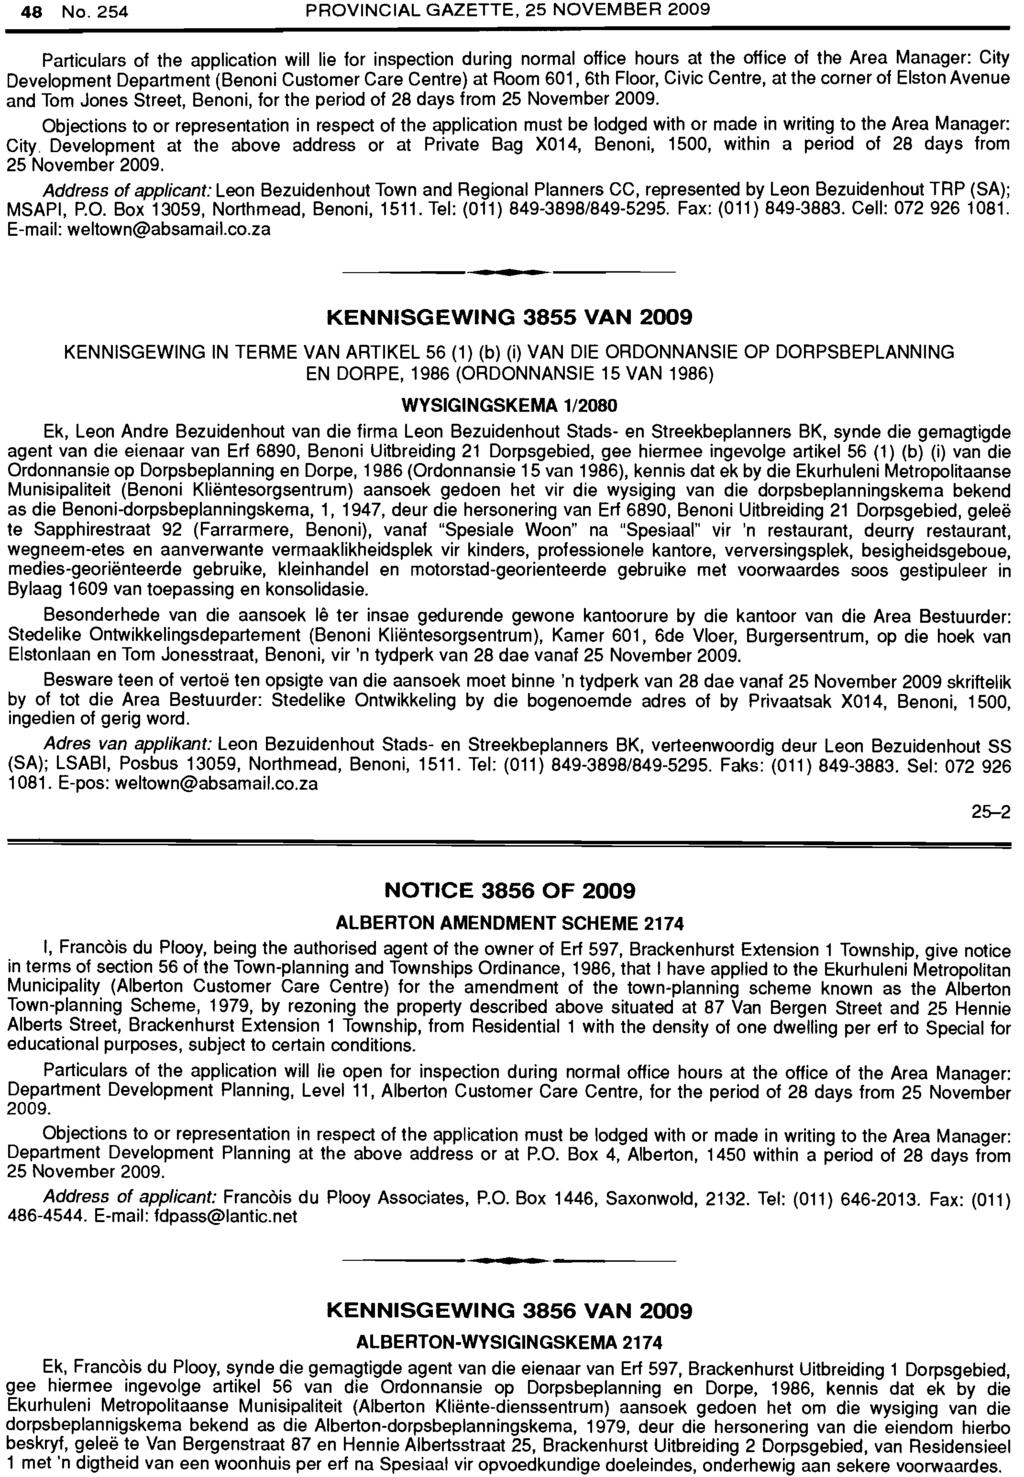 48 No. 254 PROVINCIAL GAZETTE, 25 NOVEMBER 2009 Particulars of the application will lie for inspection during normal office hours.